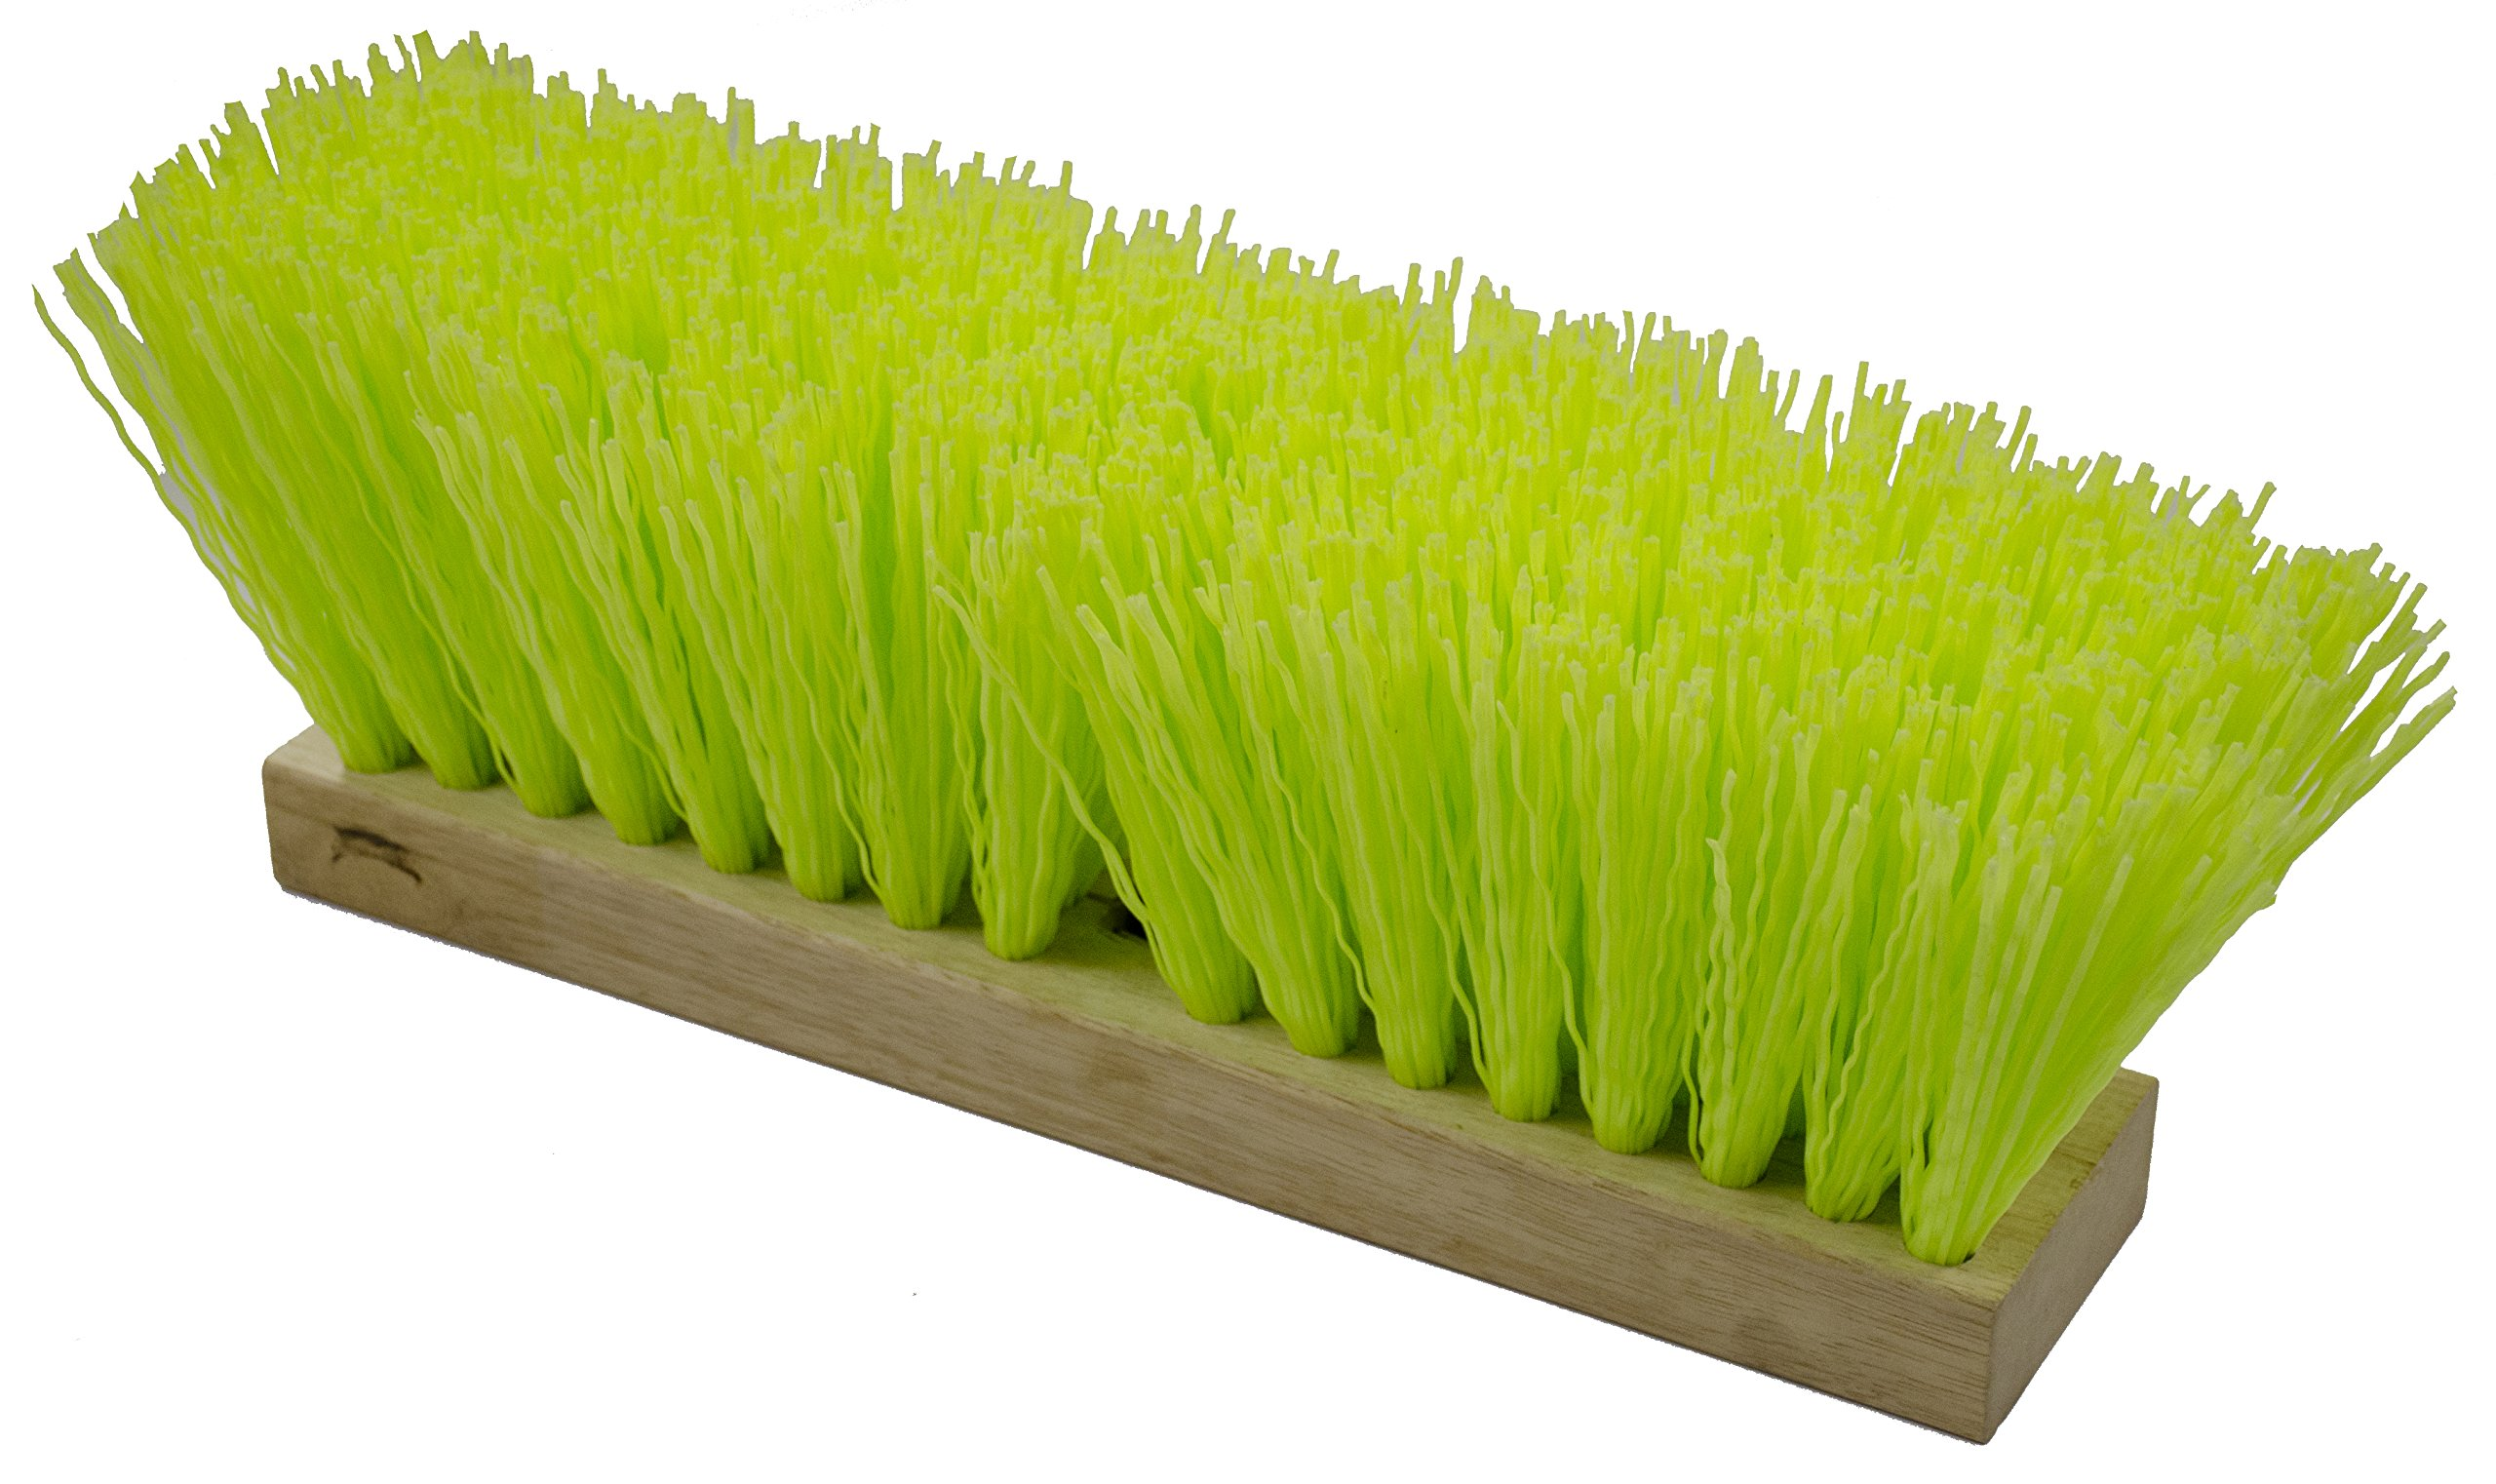 Magnolia Brush 1316-VS 16'' High Visibility Street Broom, Hi Vis Green (Pack of 6)